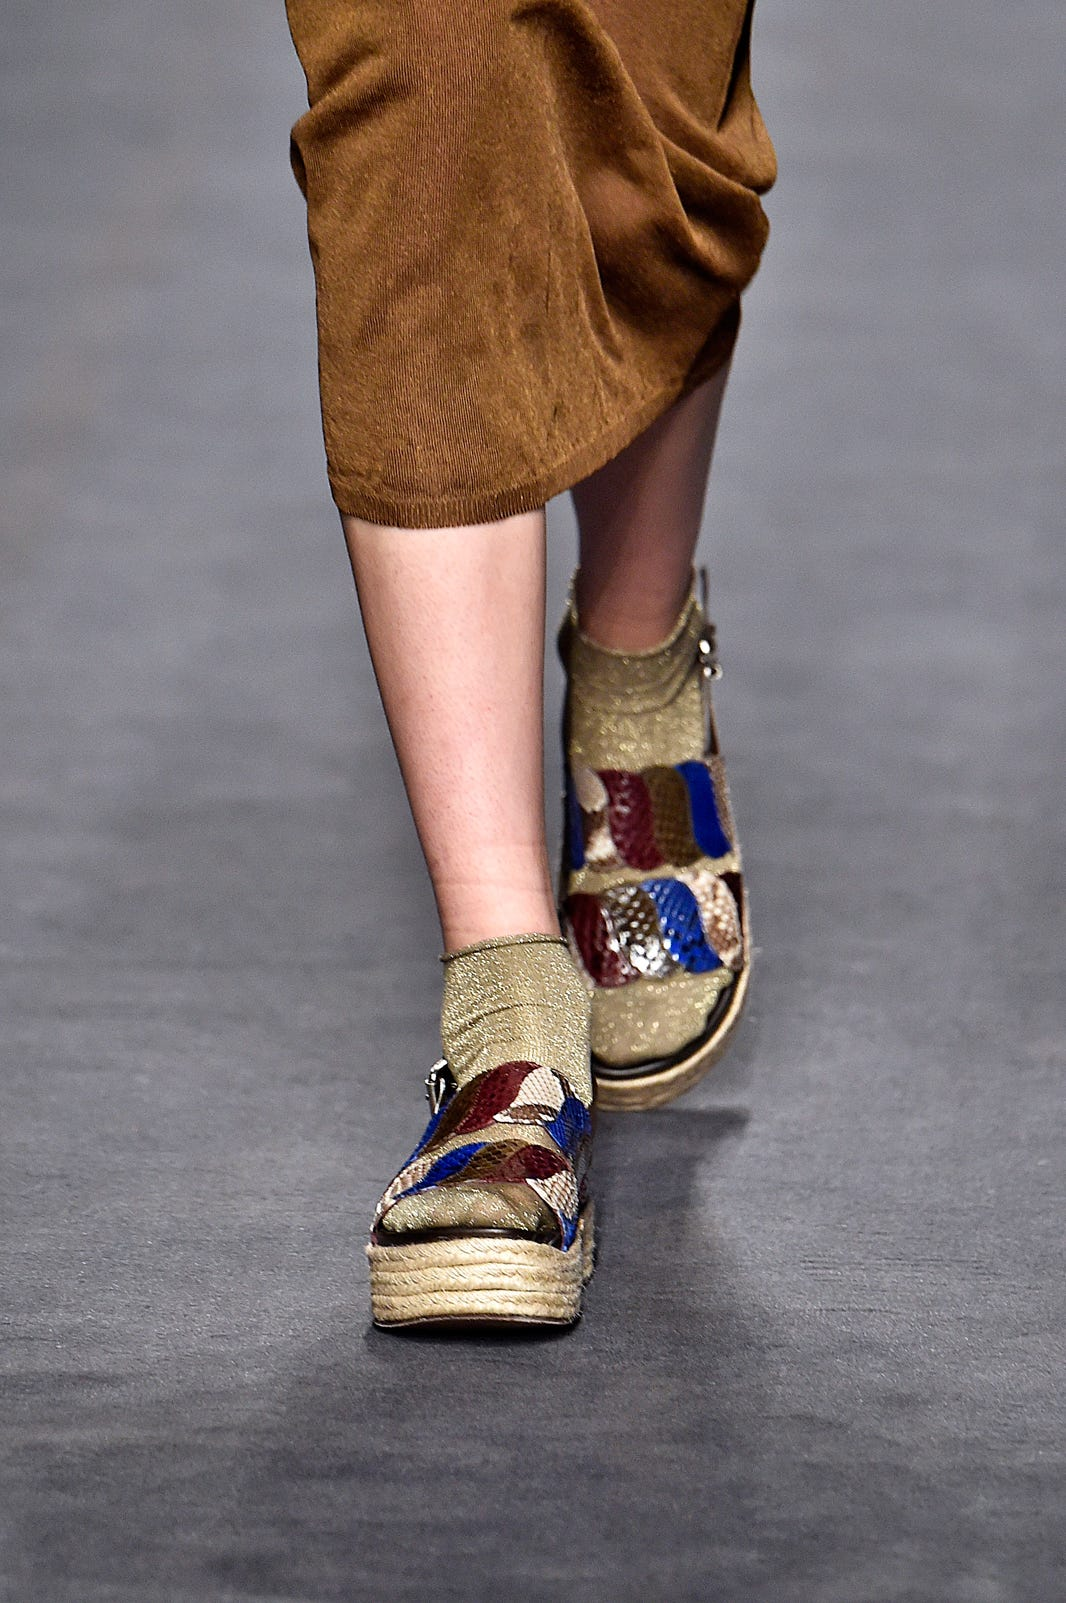 Antonio Marras Gold Sparkle Socks Mfw Fashion Show